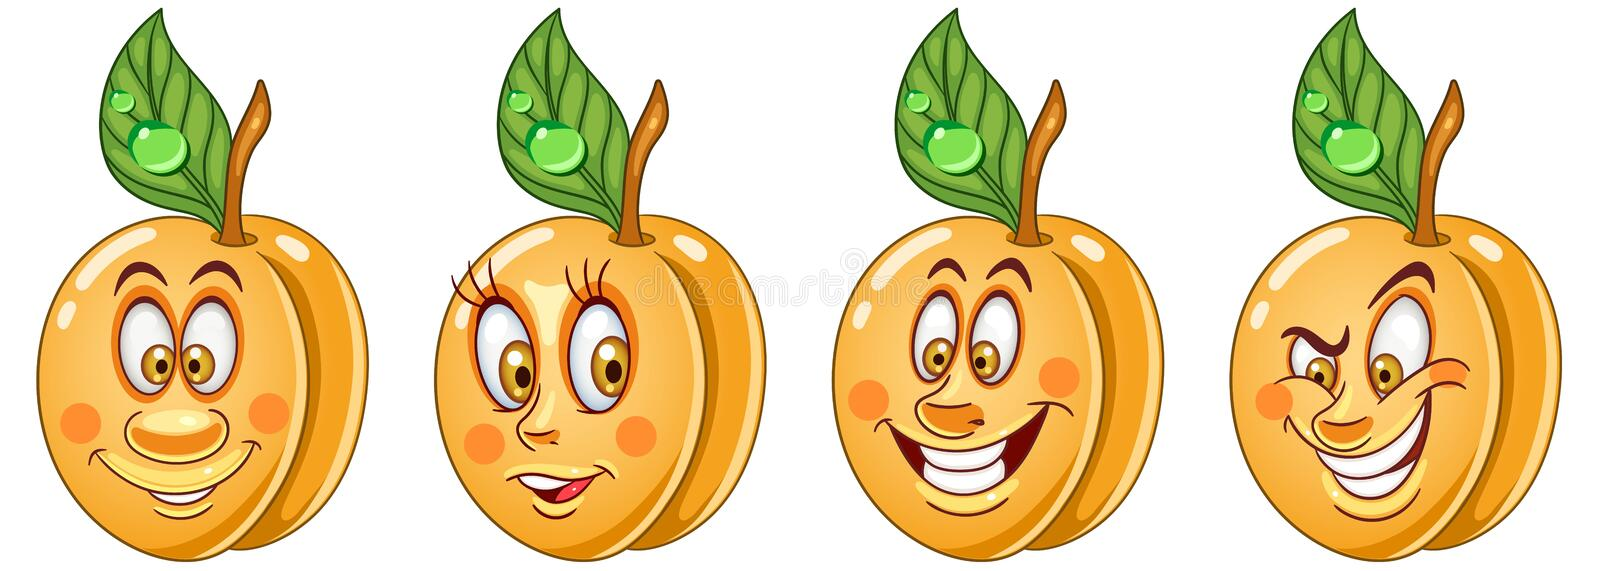 Apricot. Food Emoji Emoticon collection royalty free stock images